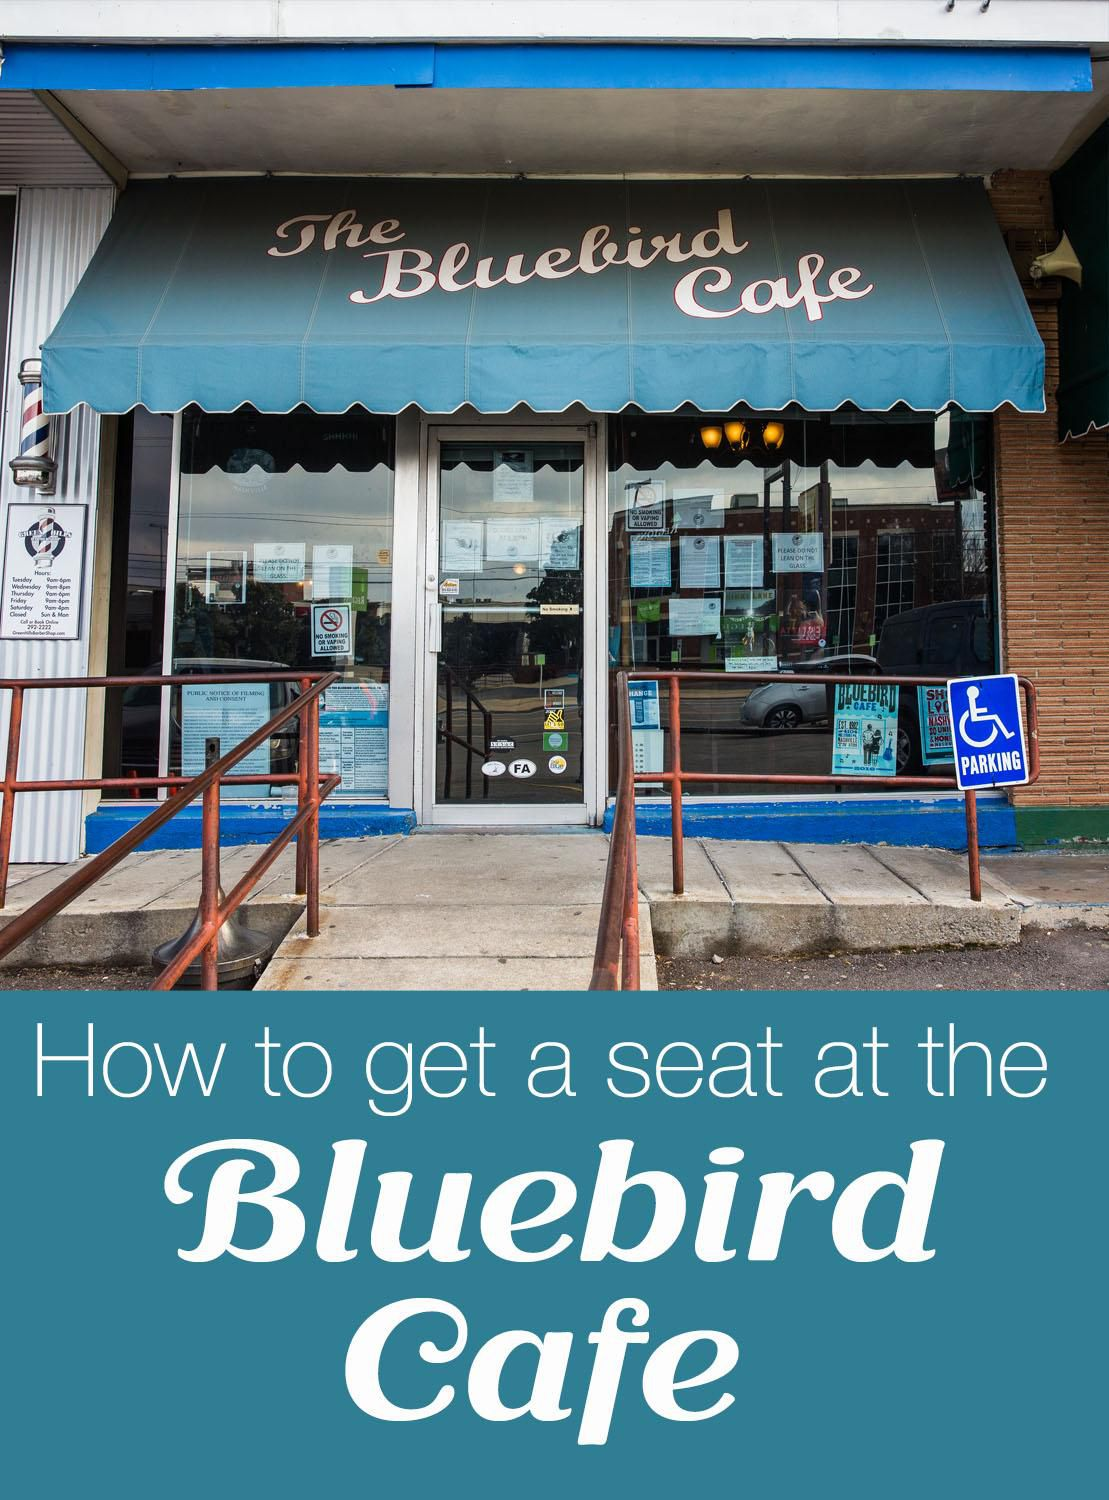 How to get a seat at the Bluebird Cafe